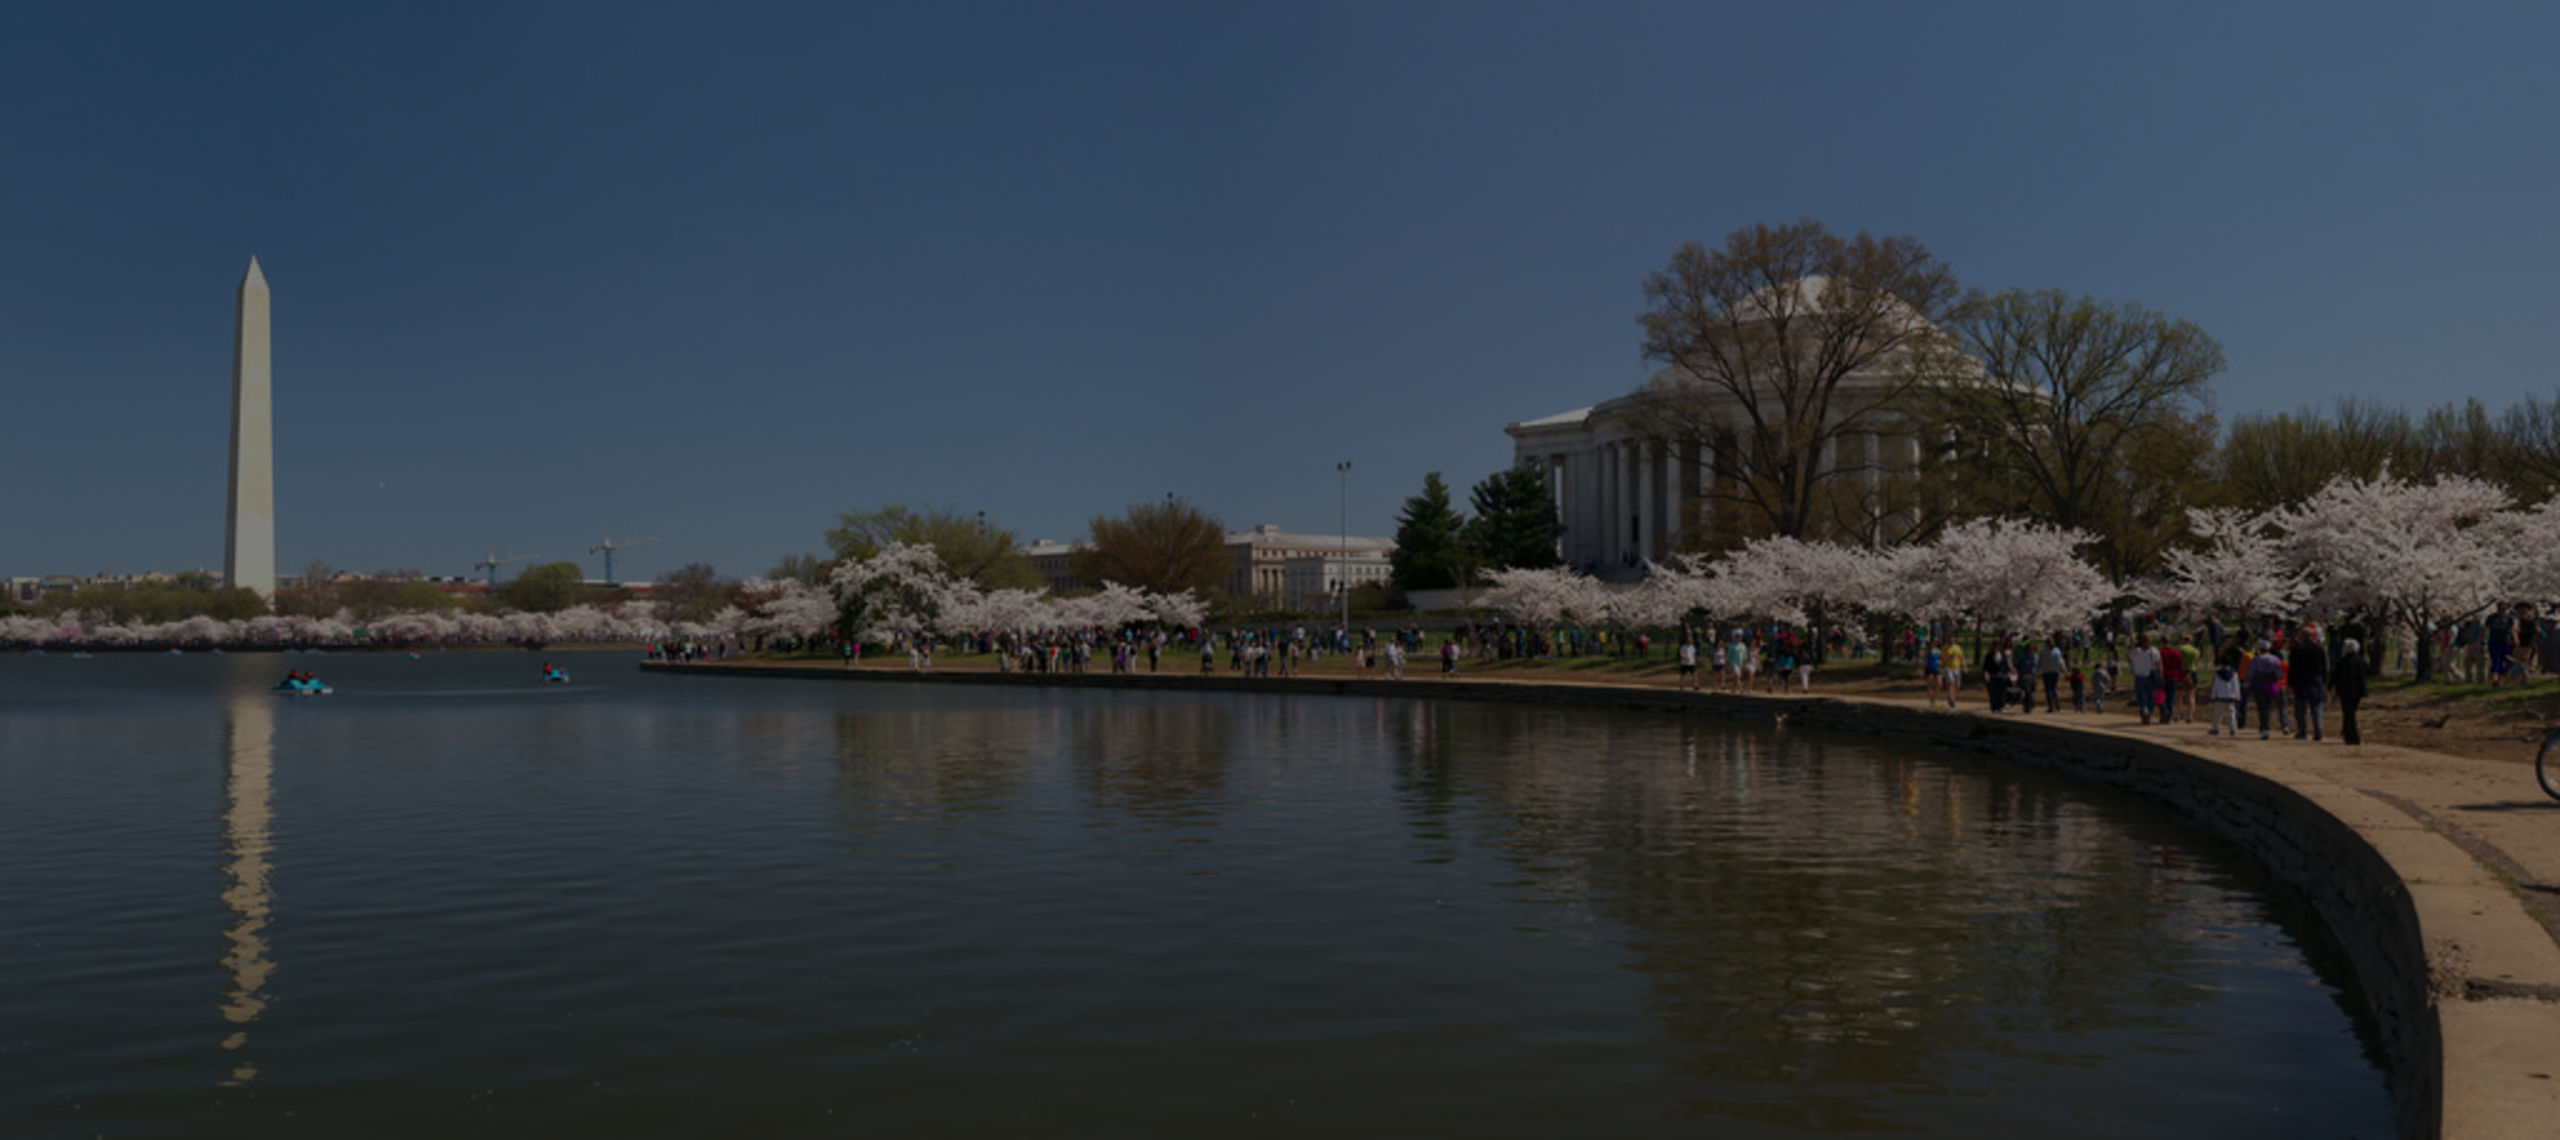 Cherry Trees in front of the Jefferson Memorial